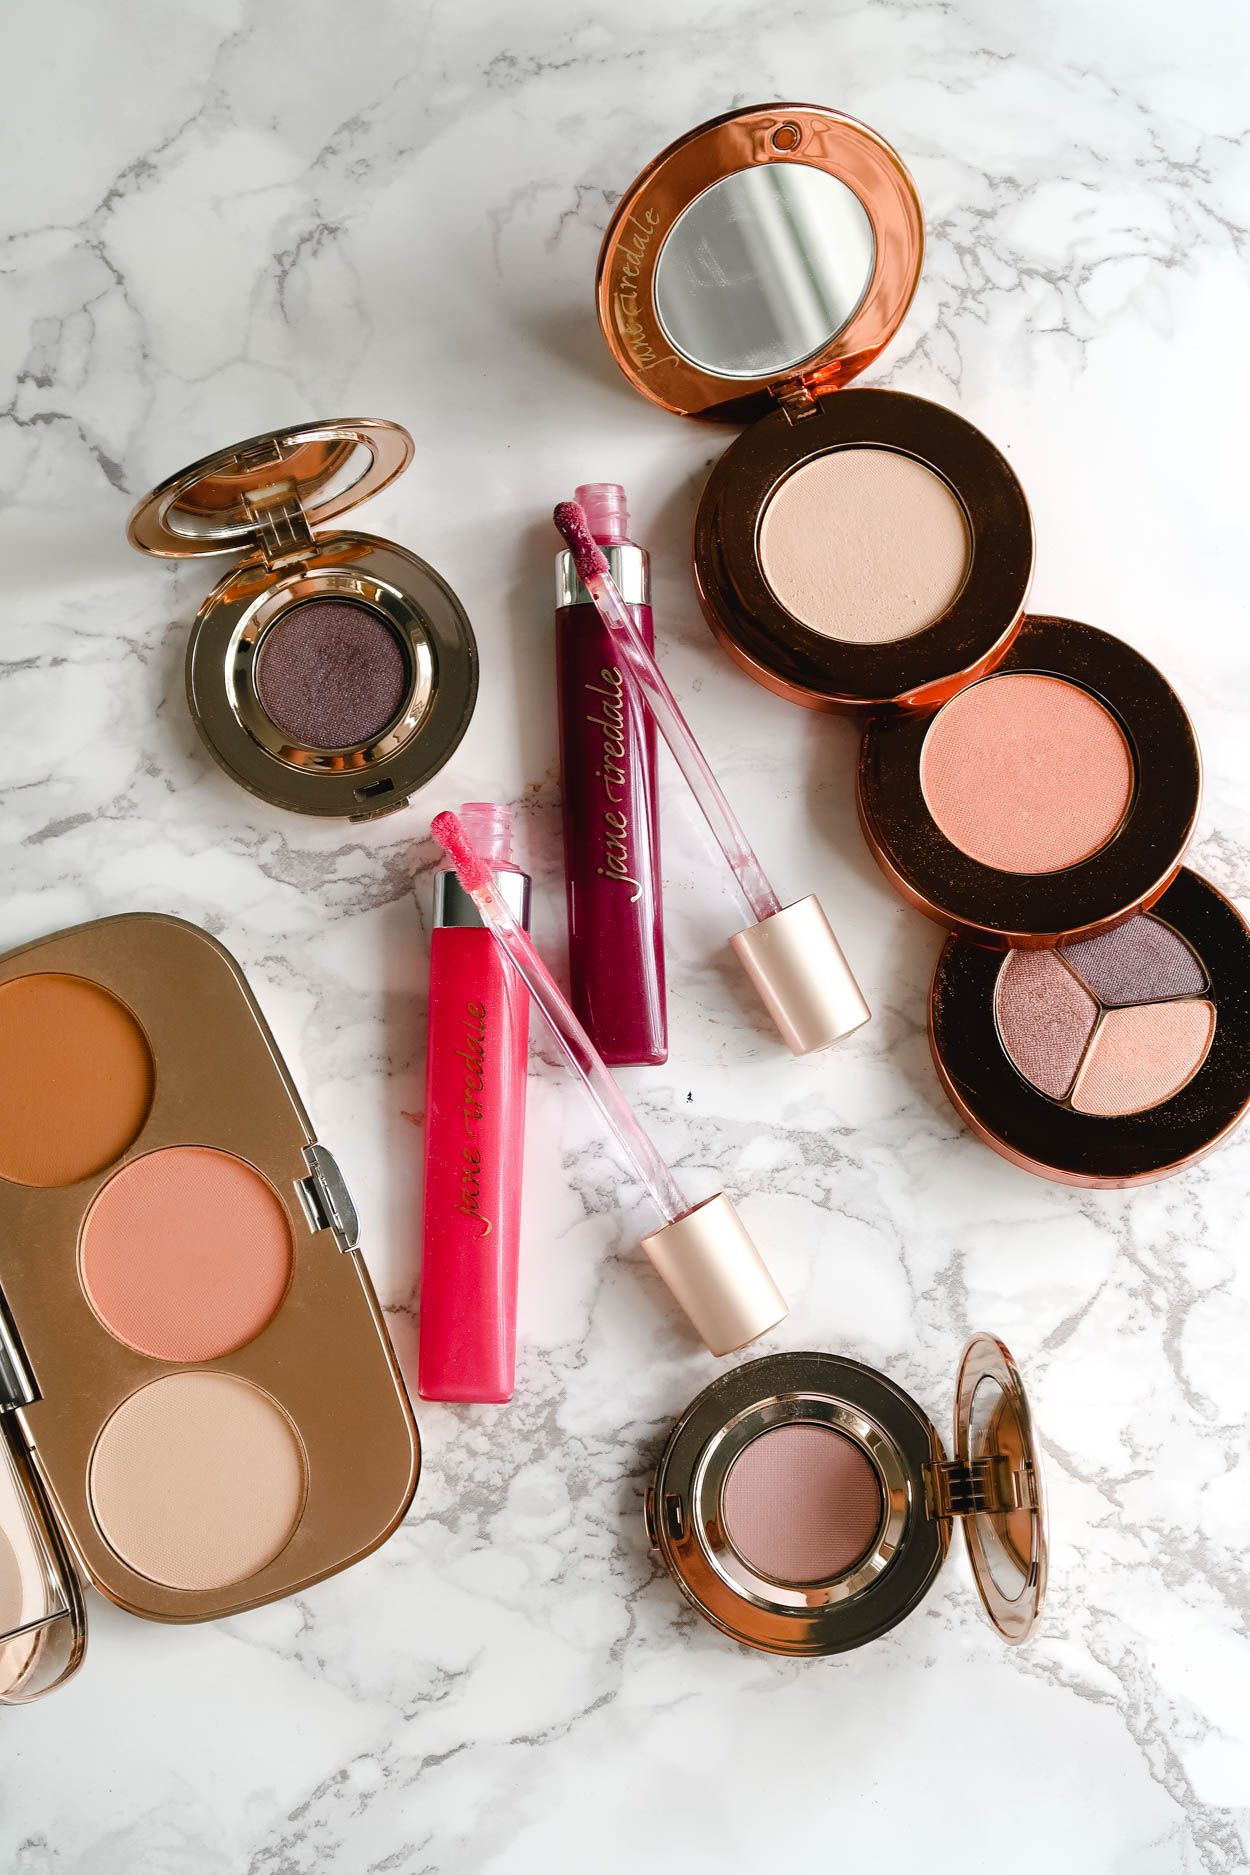 Jane Iredale The Skincare Makeup Makeup, Skin care